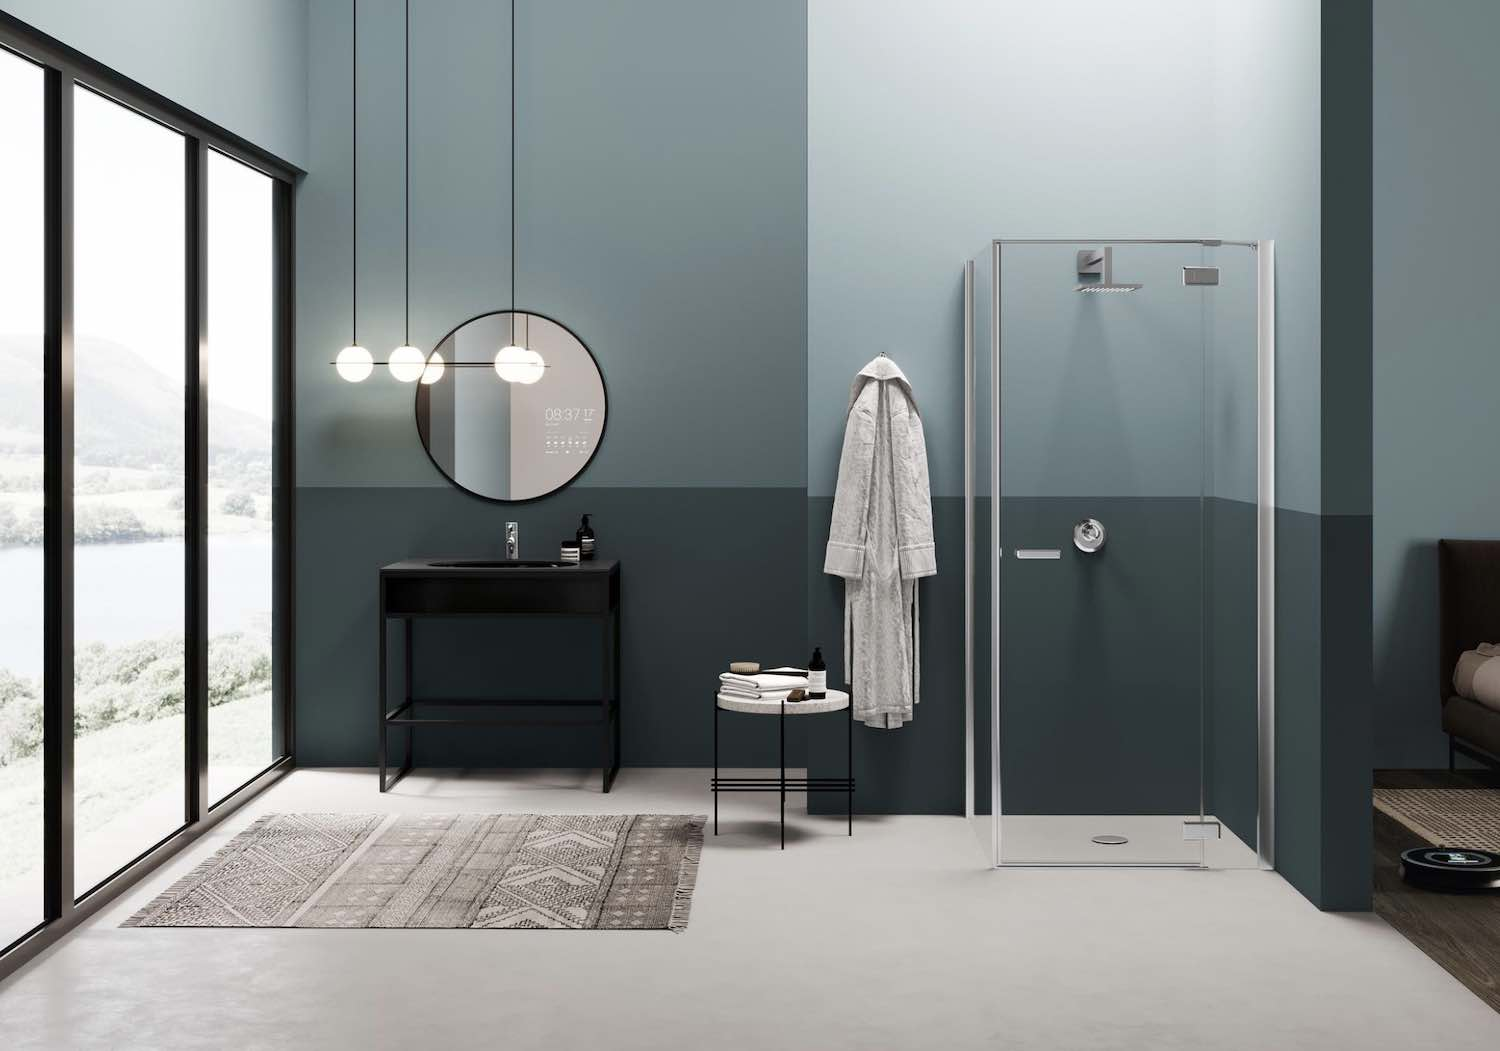 Cersaie 2019: bathroom digest!